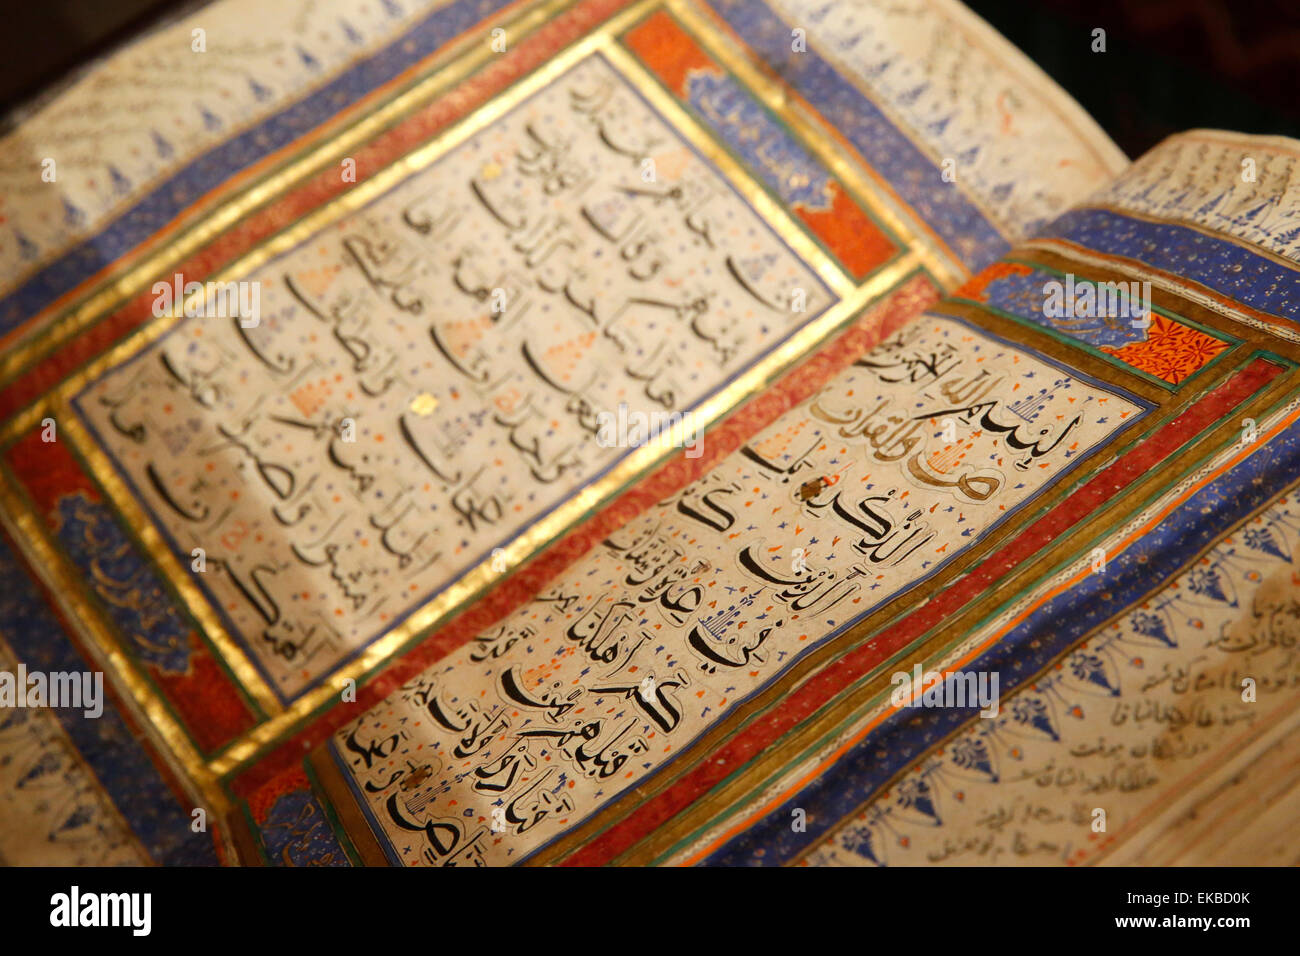 Quran from the 15th century in India, Institut du Monde Arabe Exhibition on the Hajj, Paris, France - Stock Image